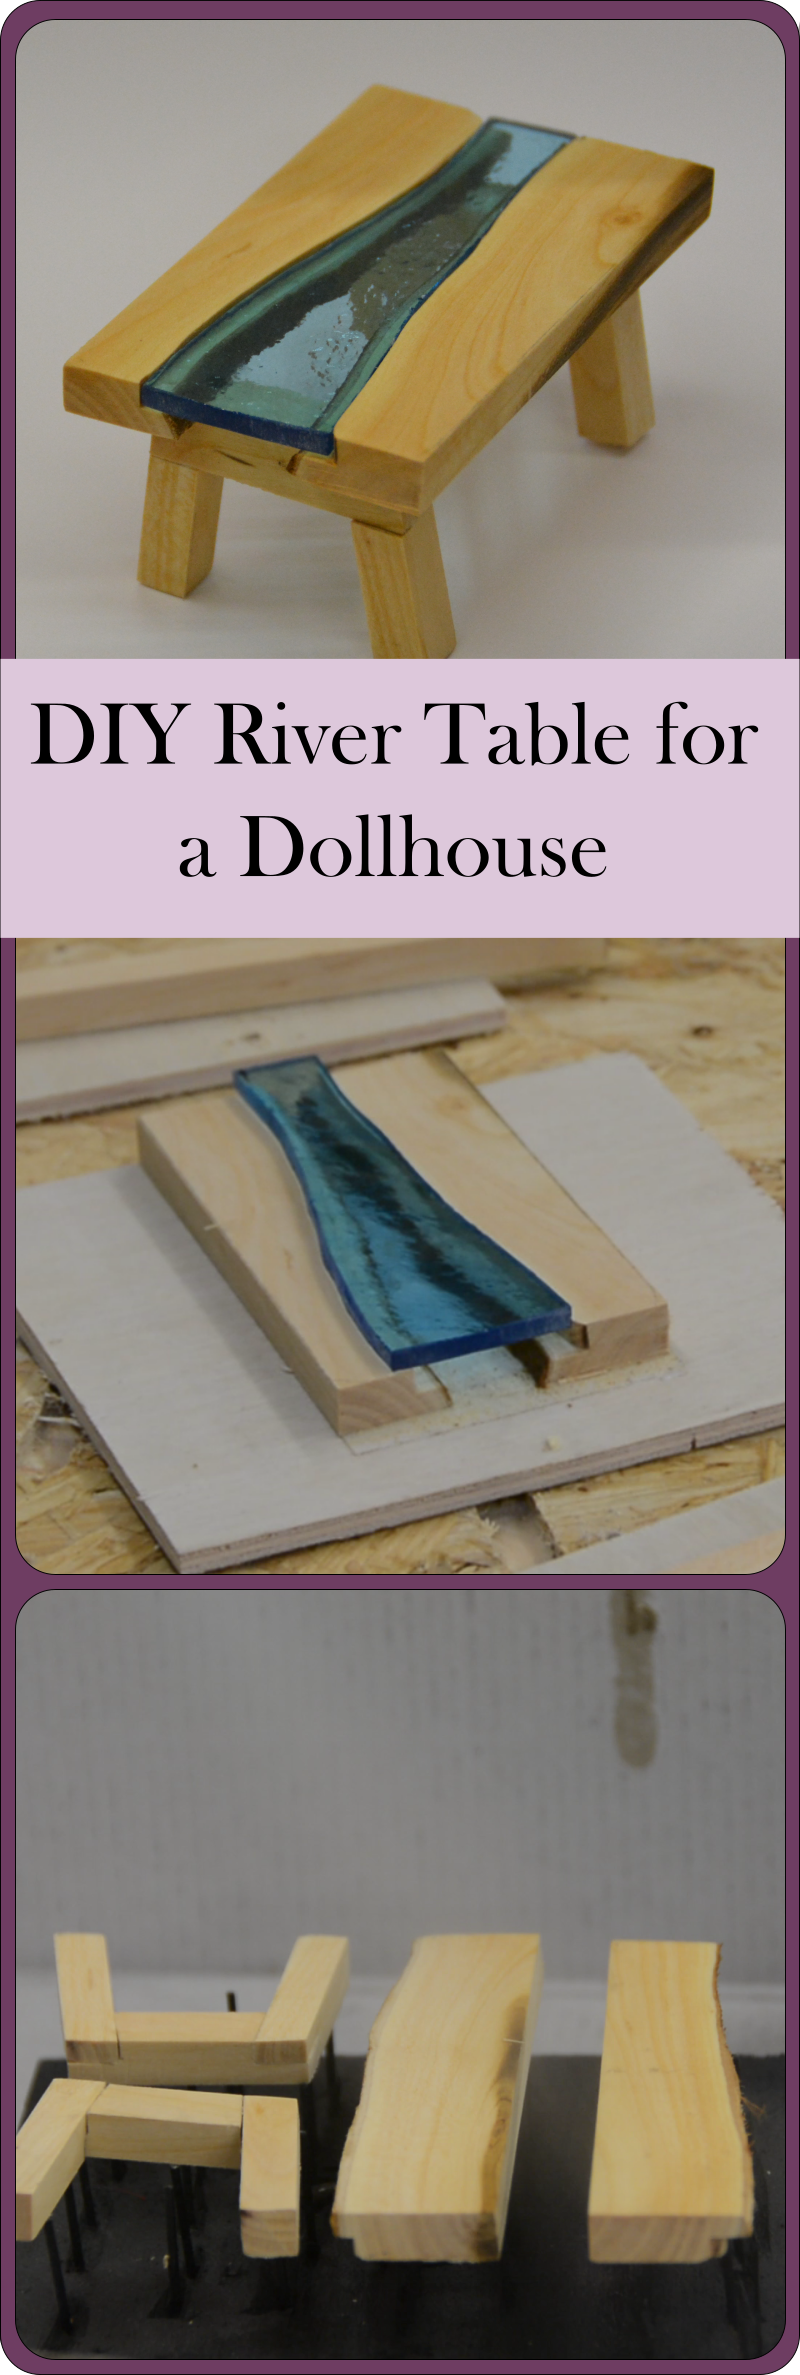 How to create a river table for a dollhouse - complete building instructions with video.